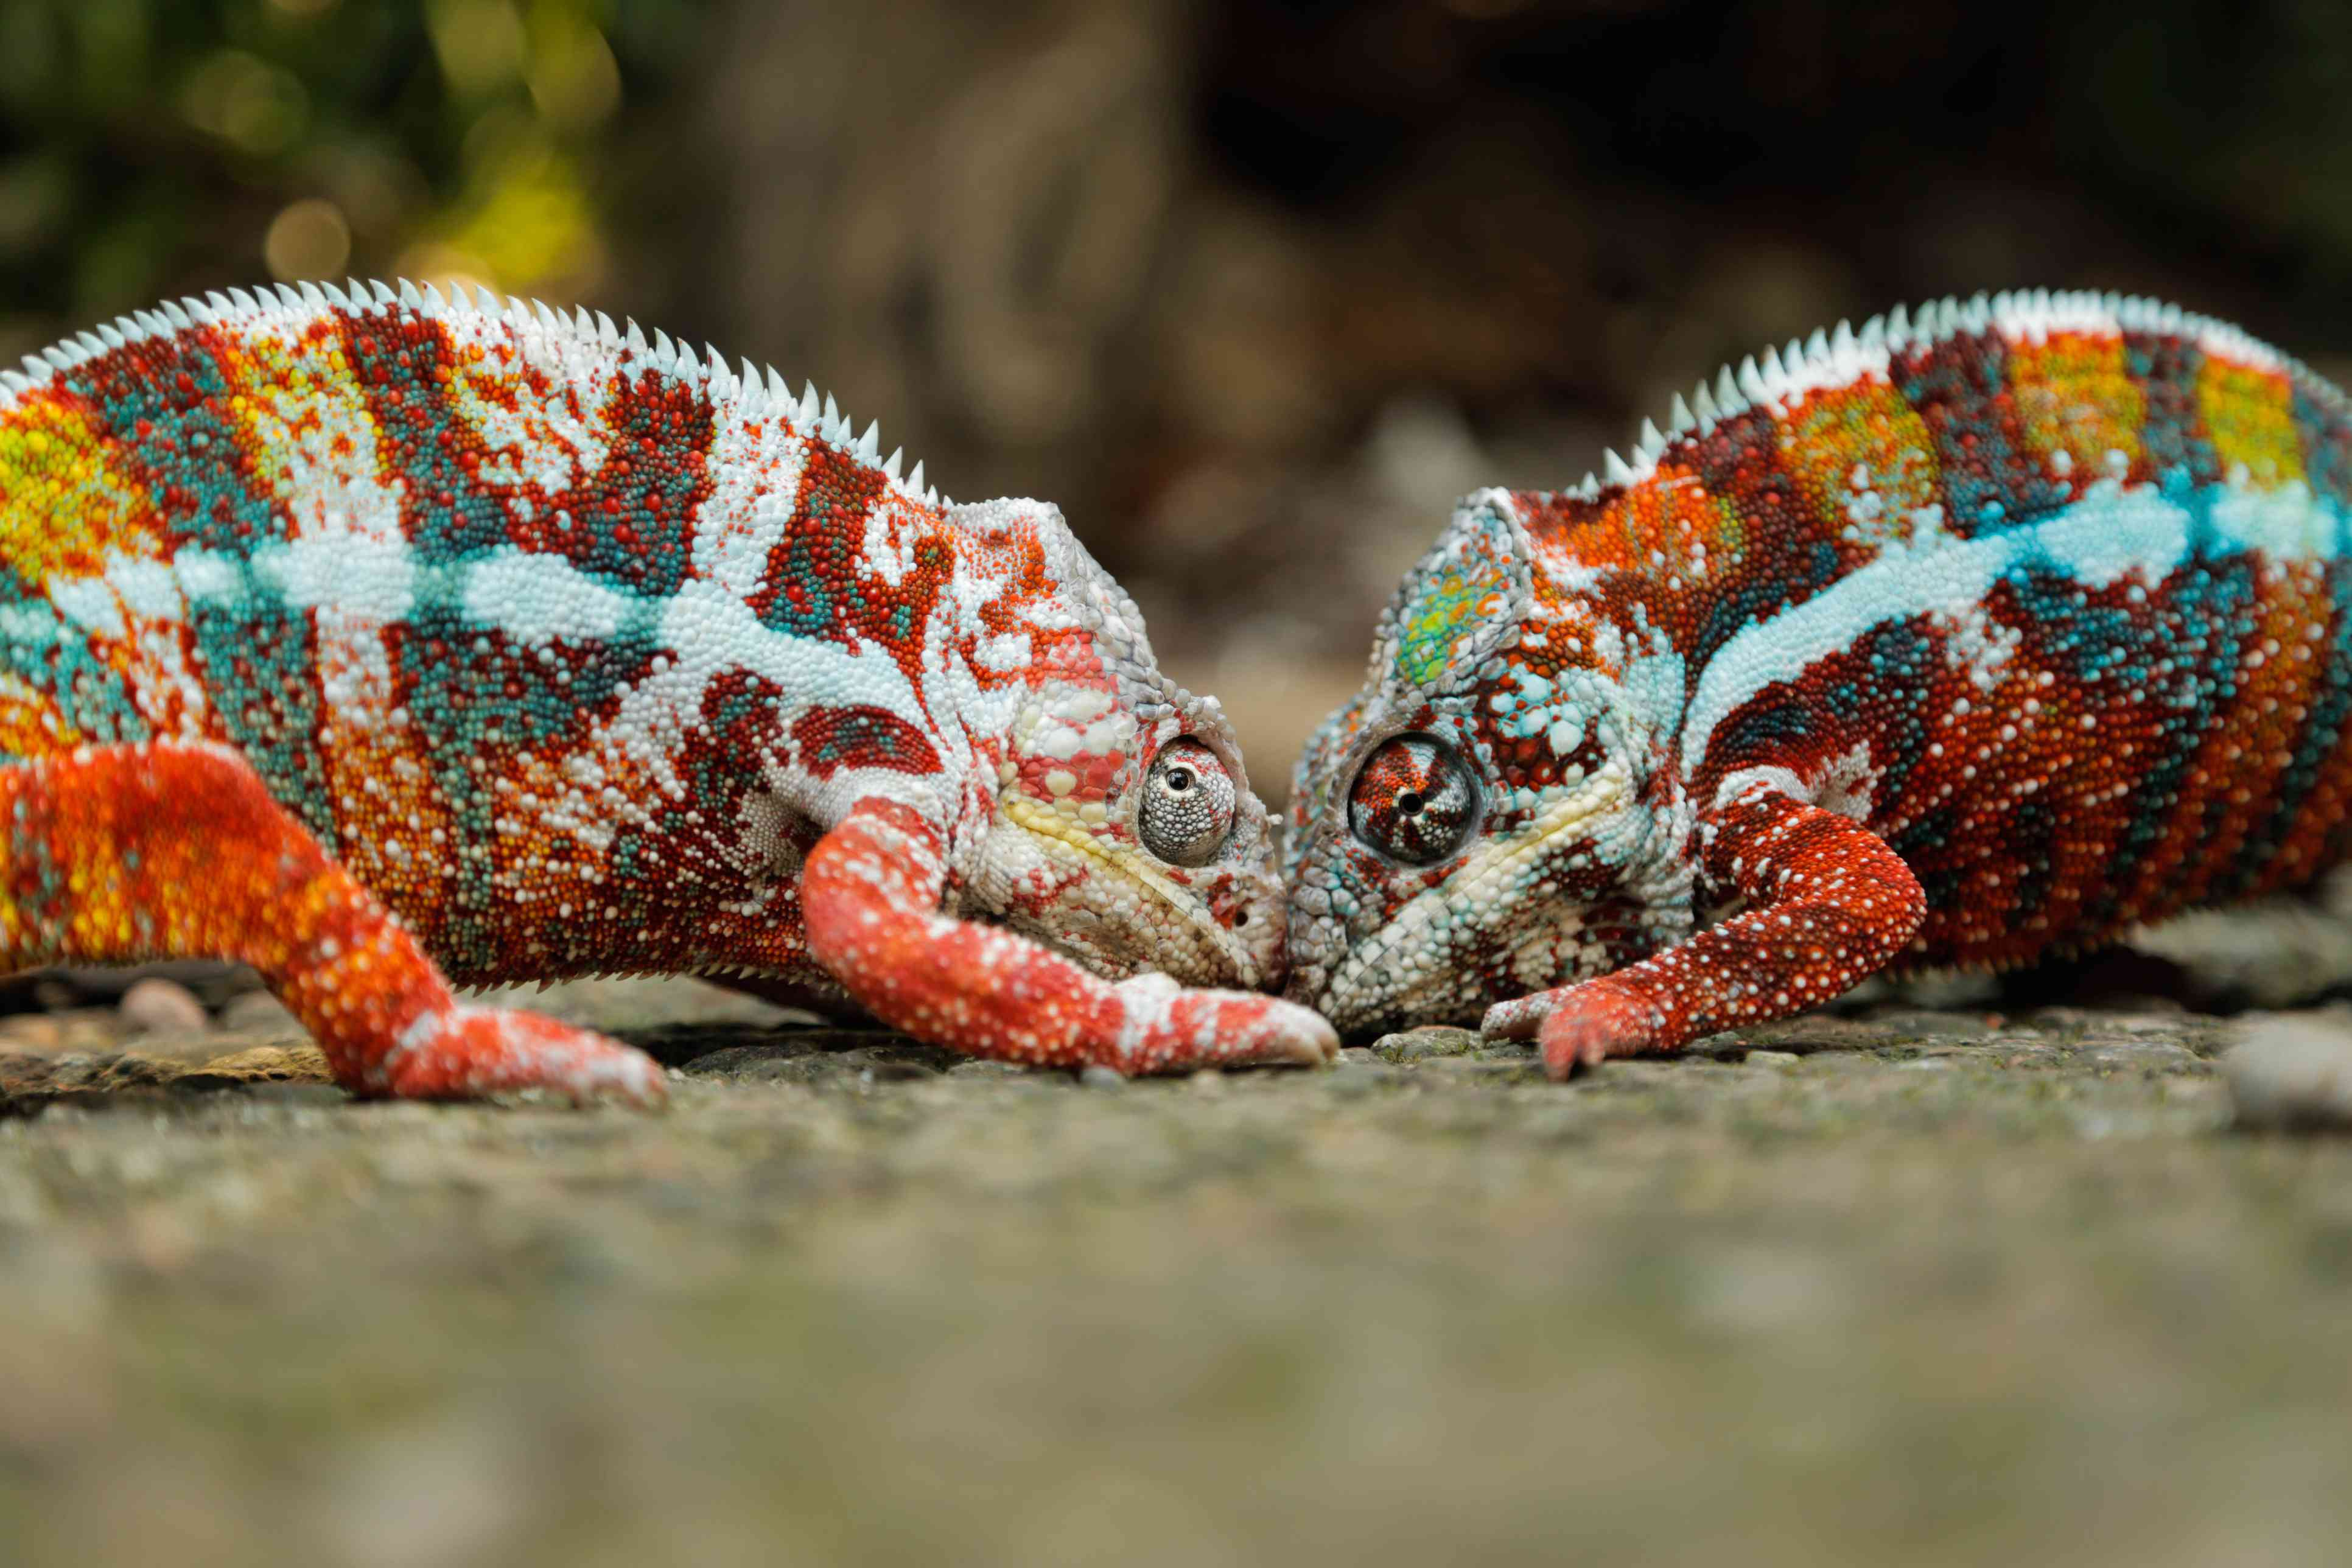 Two Chameleons are Fighting